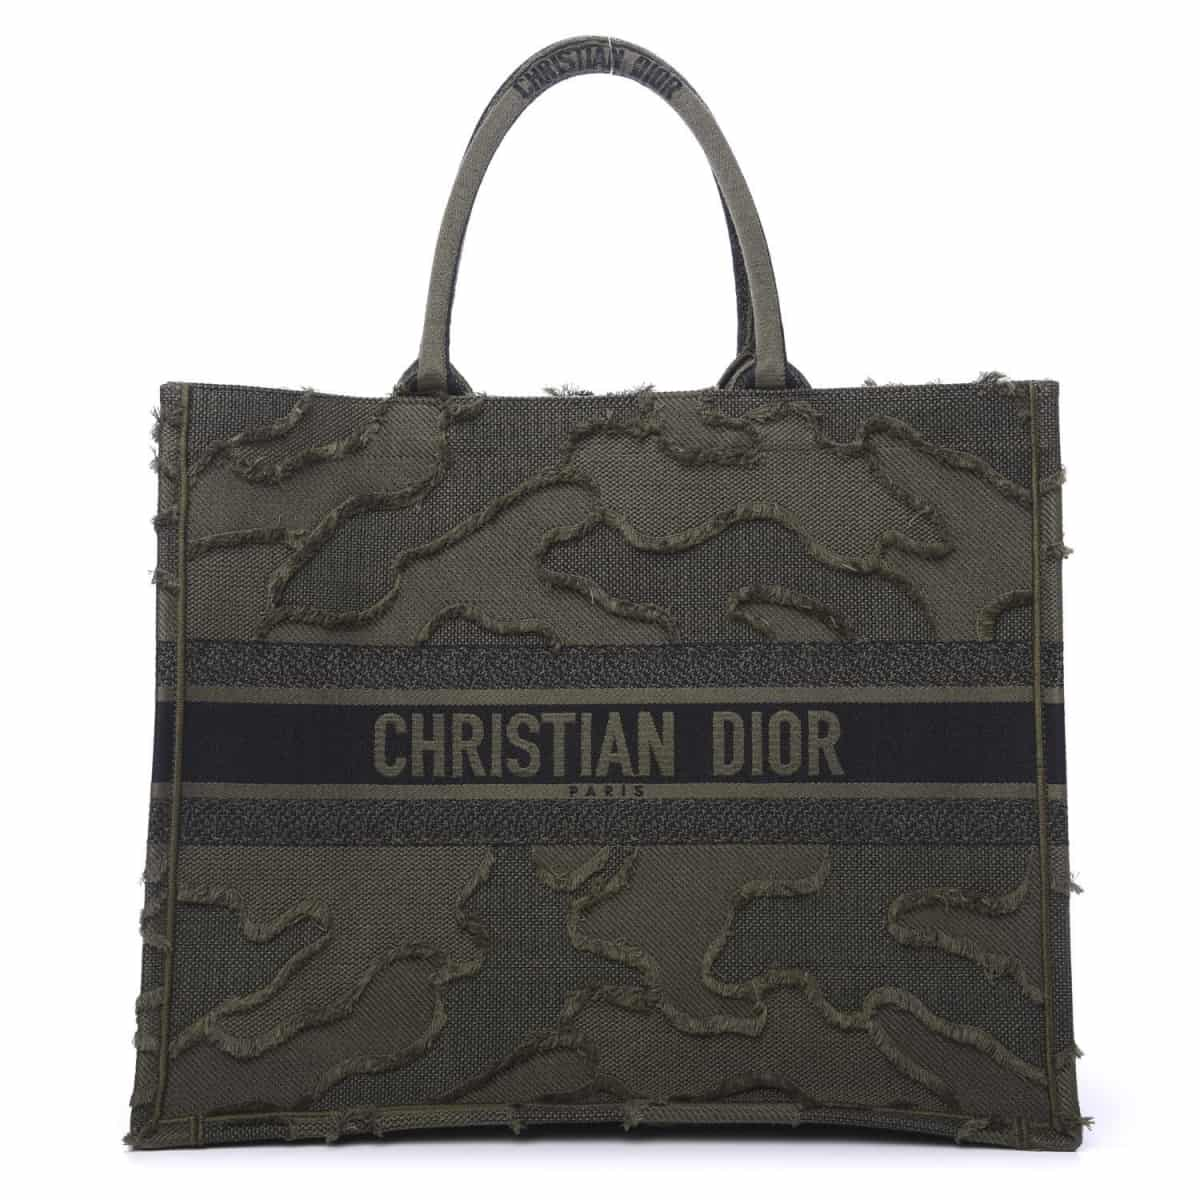 BOLSA DIOR BOOK TOTE CANVAS EMBROIDERED CAMOUFLAGE VERDE - 2.790,00 10 X 279,00